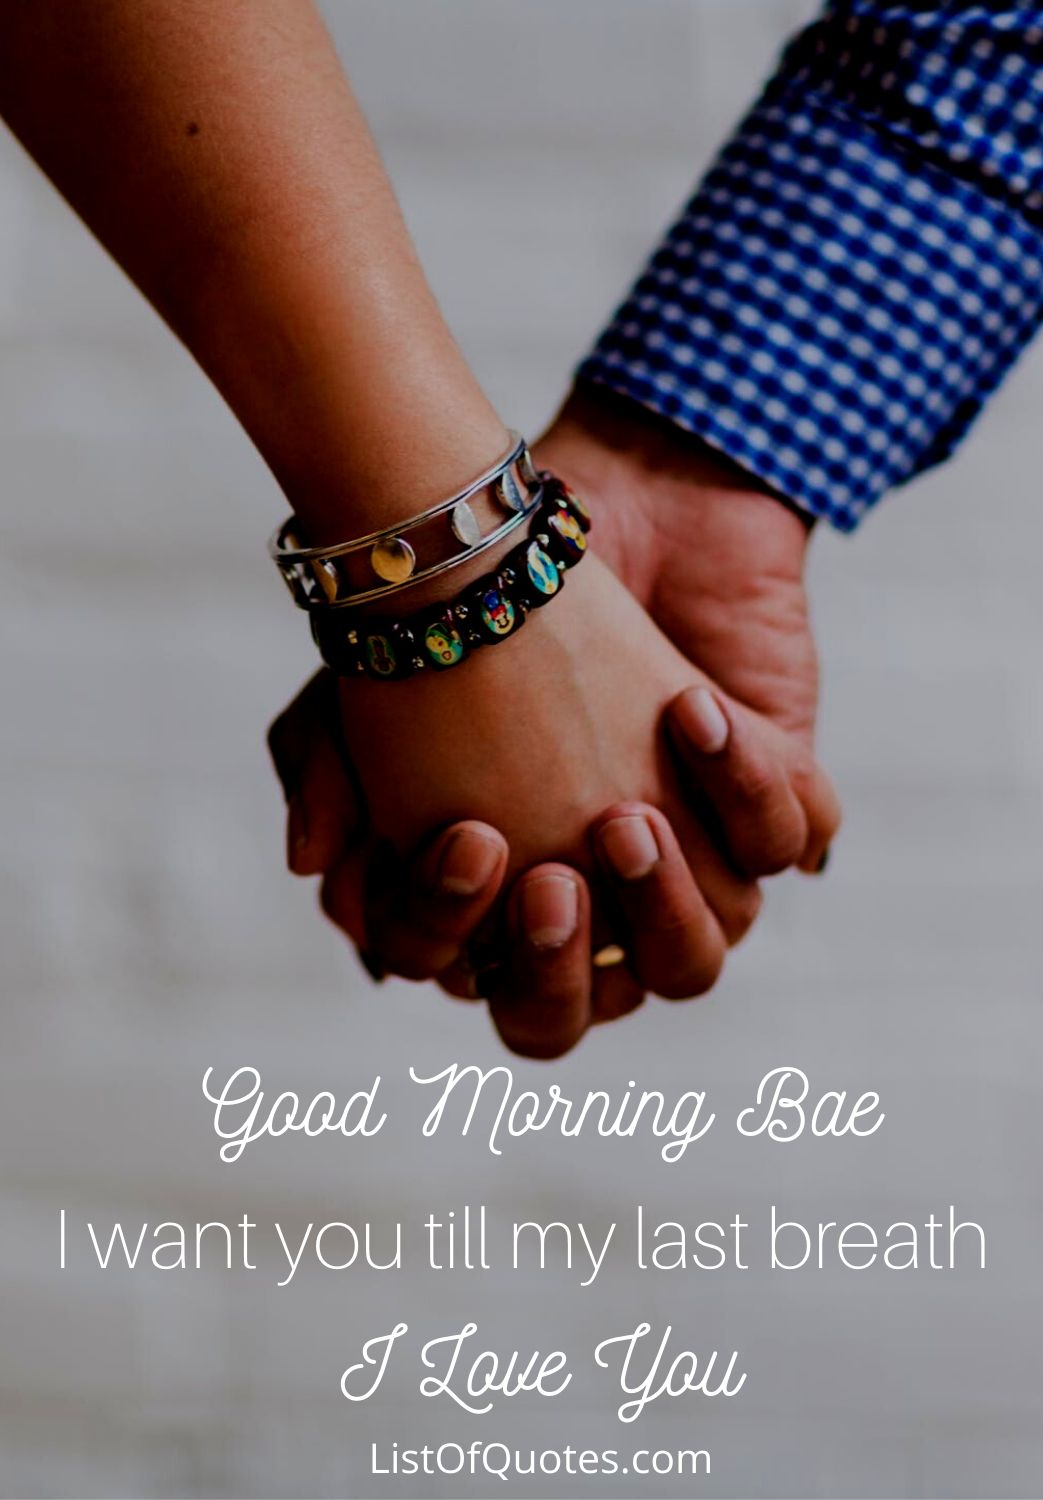 romantic cute good morning messages quotes wishes for girlfriend boyfriend(hd image free download)